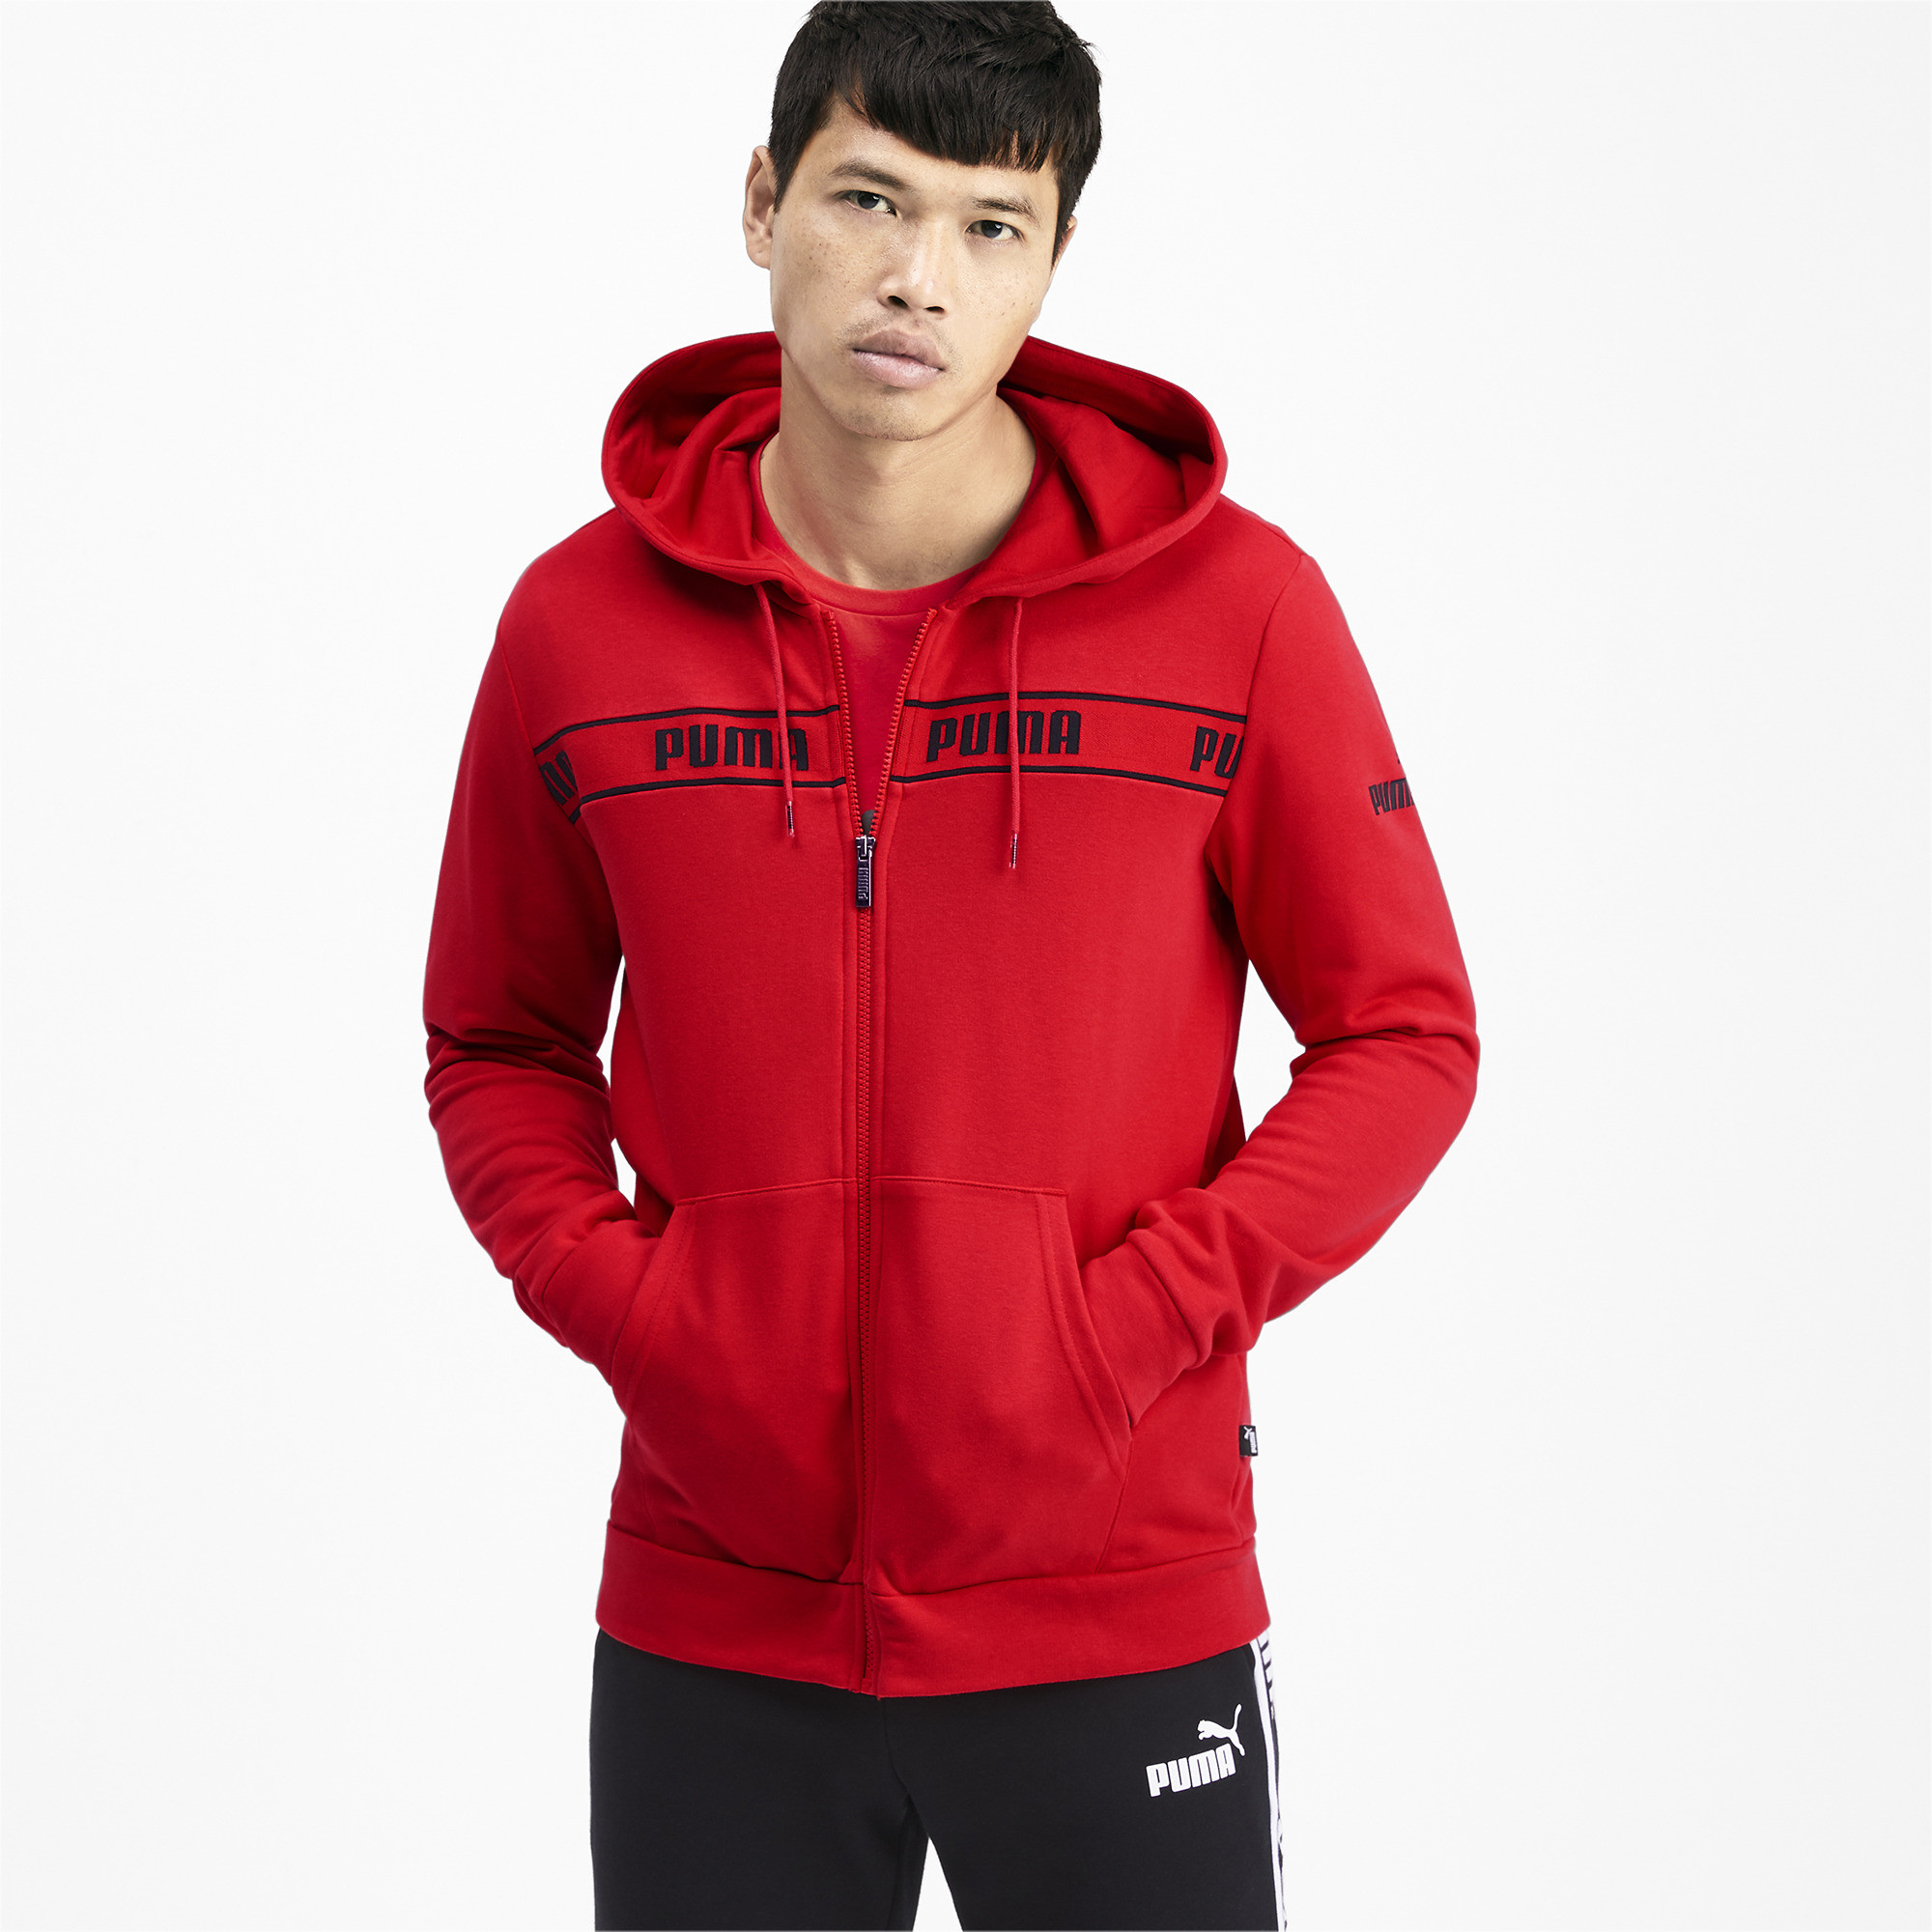 PUMA-Amplified-Men-039-s-Hooded-Jacket-Men-Sweat-Basics thumbnail 23